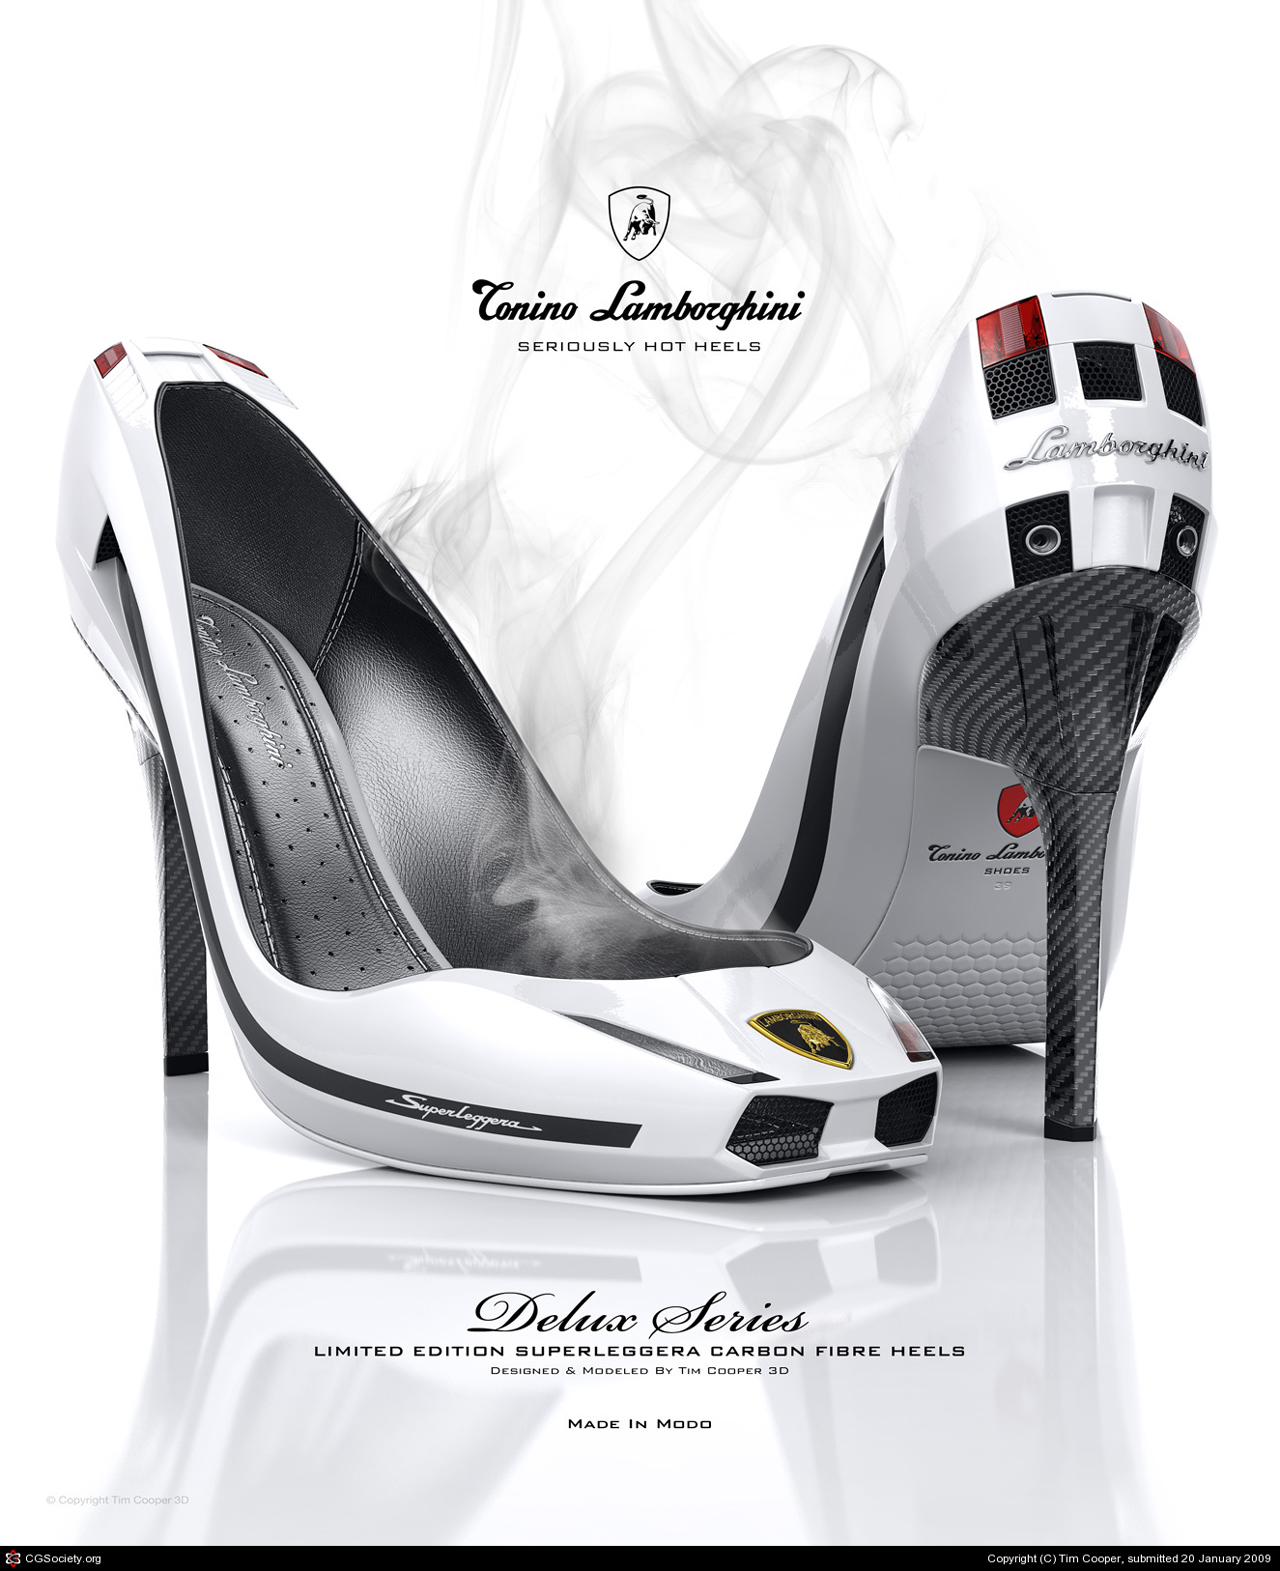 Lamborghini Gallardo Stilettos Designed by Modo Illustrator Tim Cooper